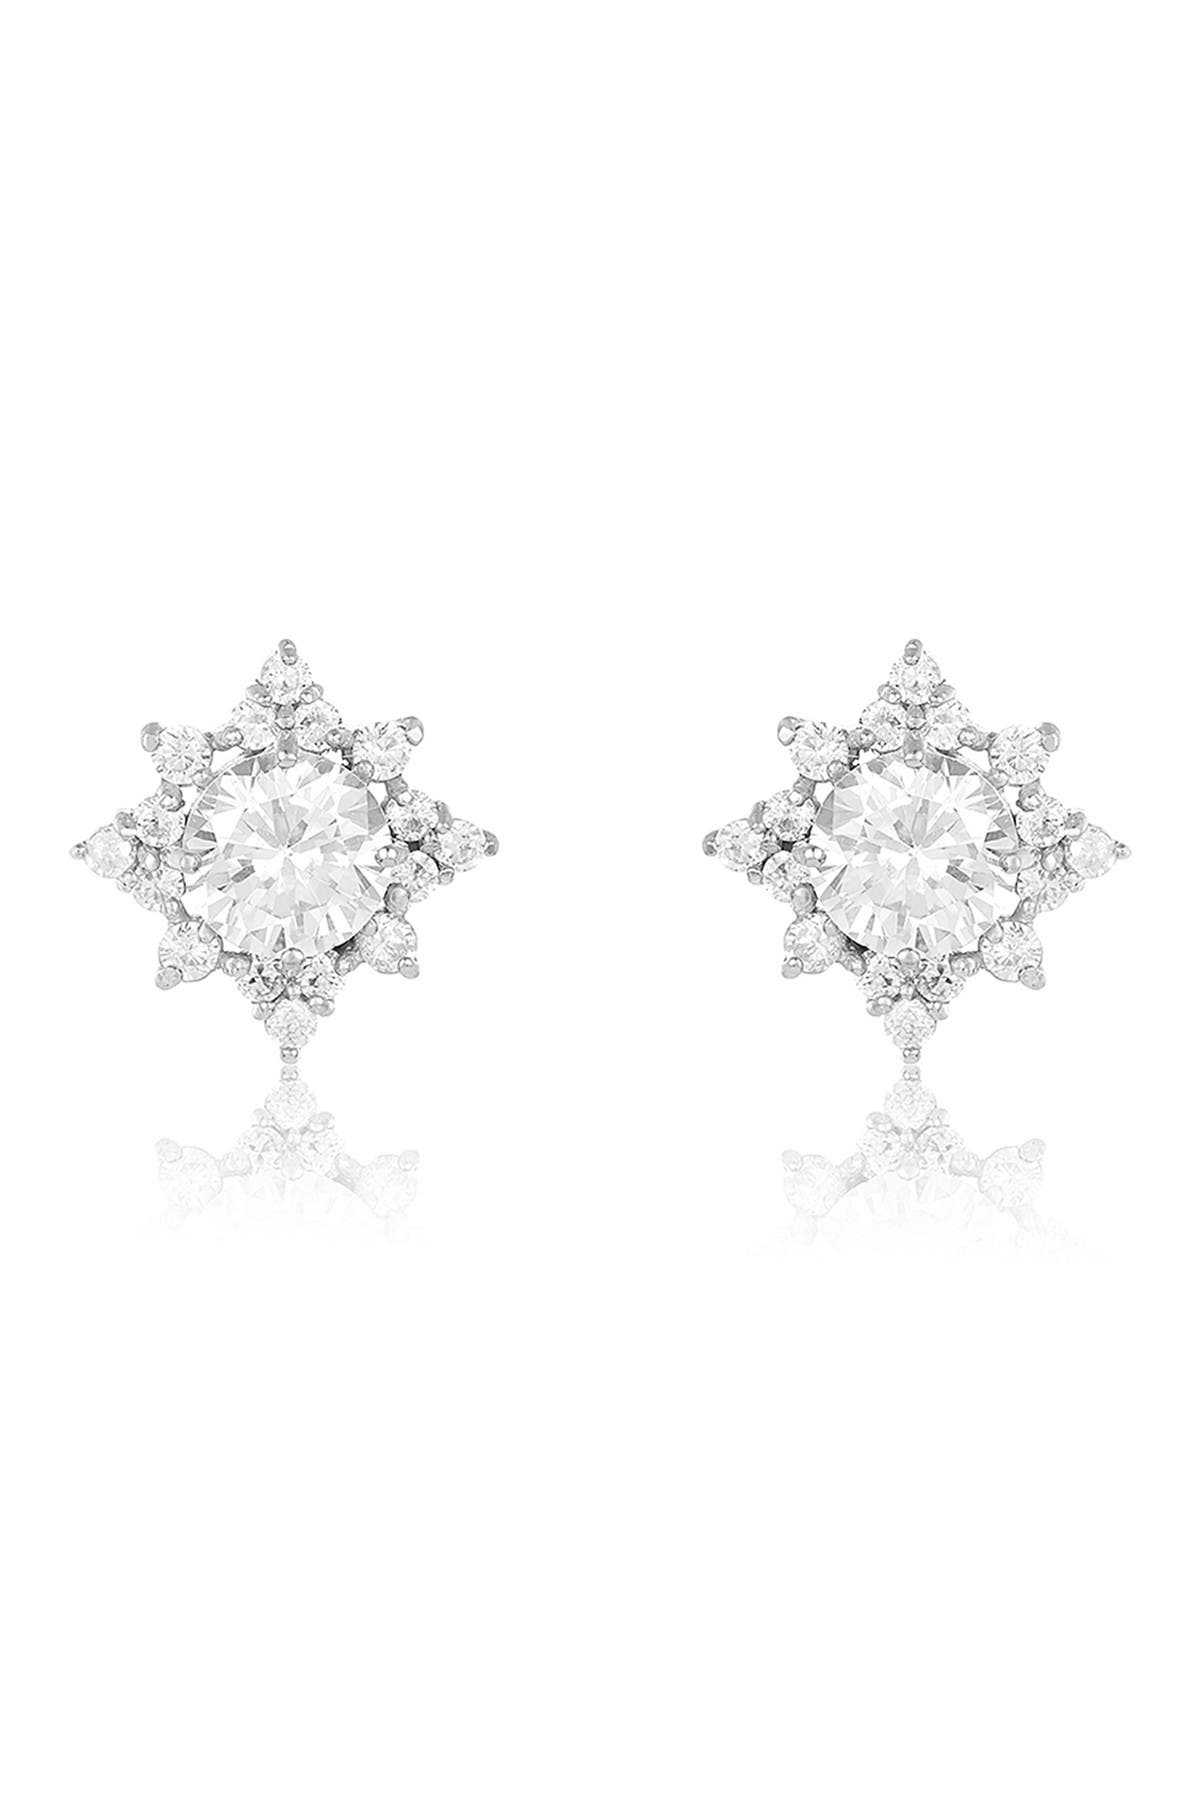 Image of Sterling Forever Sterling Silver CZ Pointed Stud Earrings